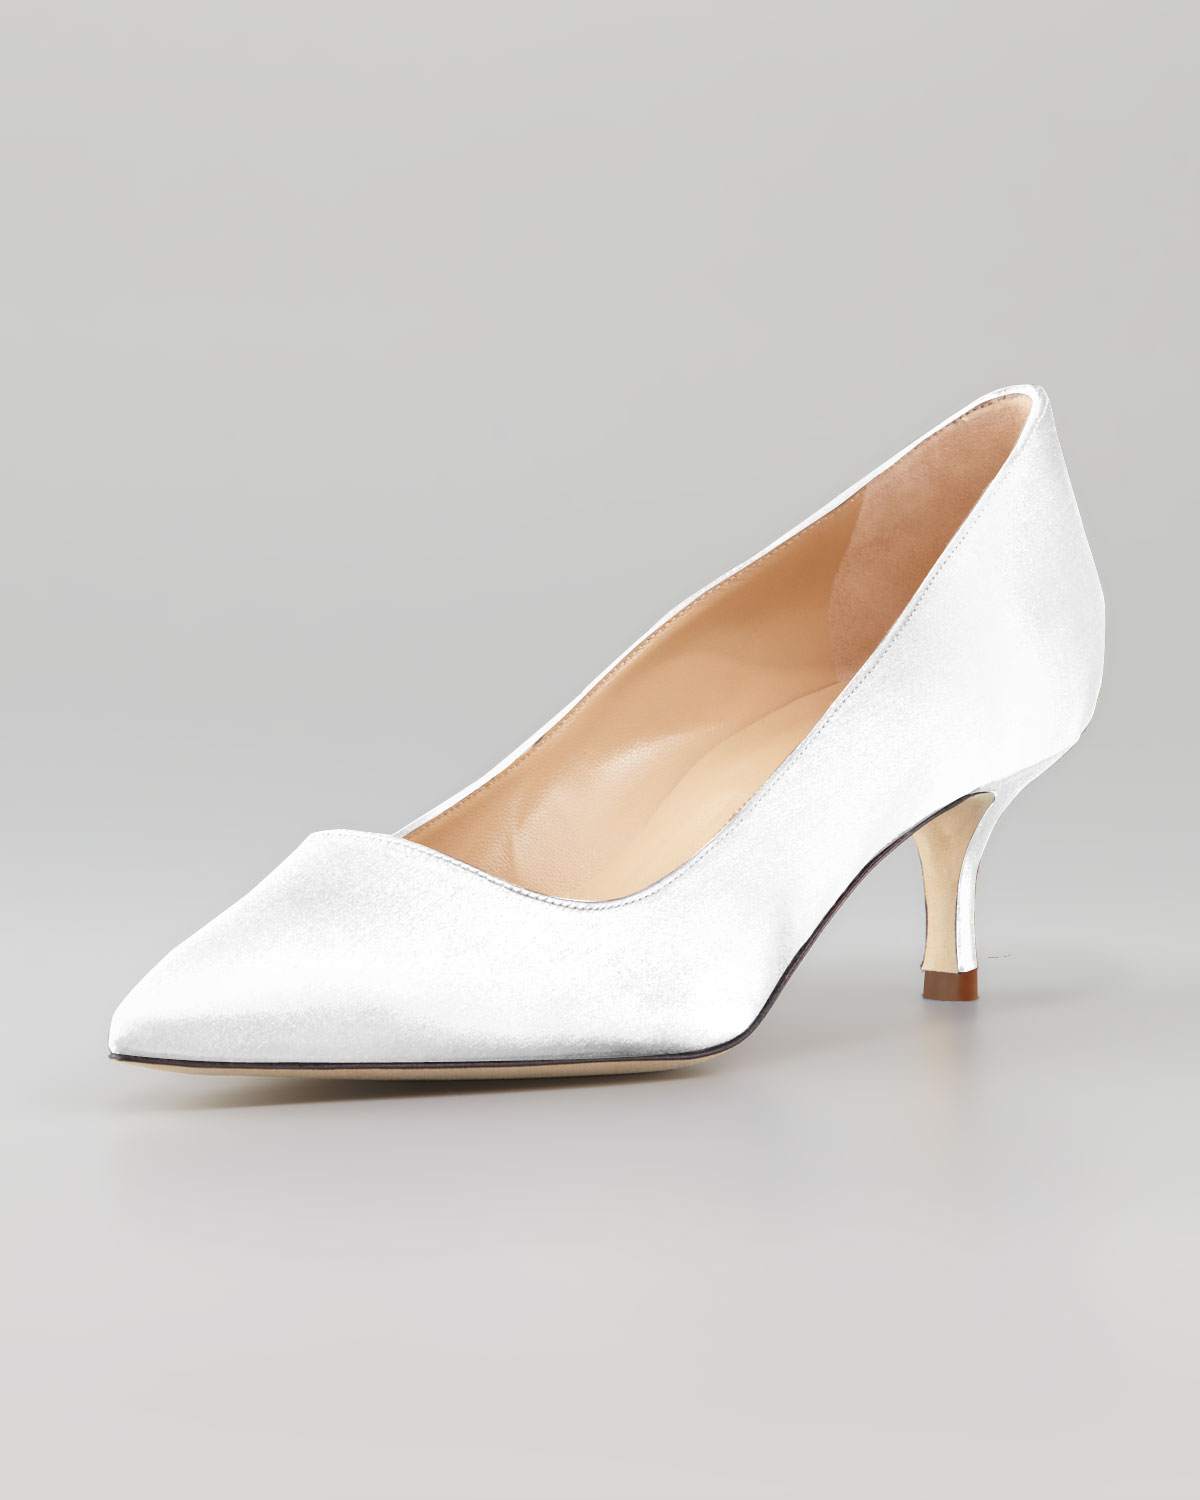 1a59963038e Lyst - Manolo Blahnik Bb Satin 50mm Pump White Made To Order in White